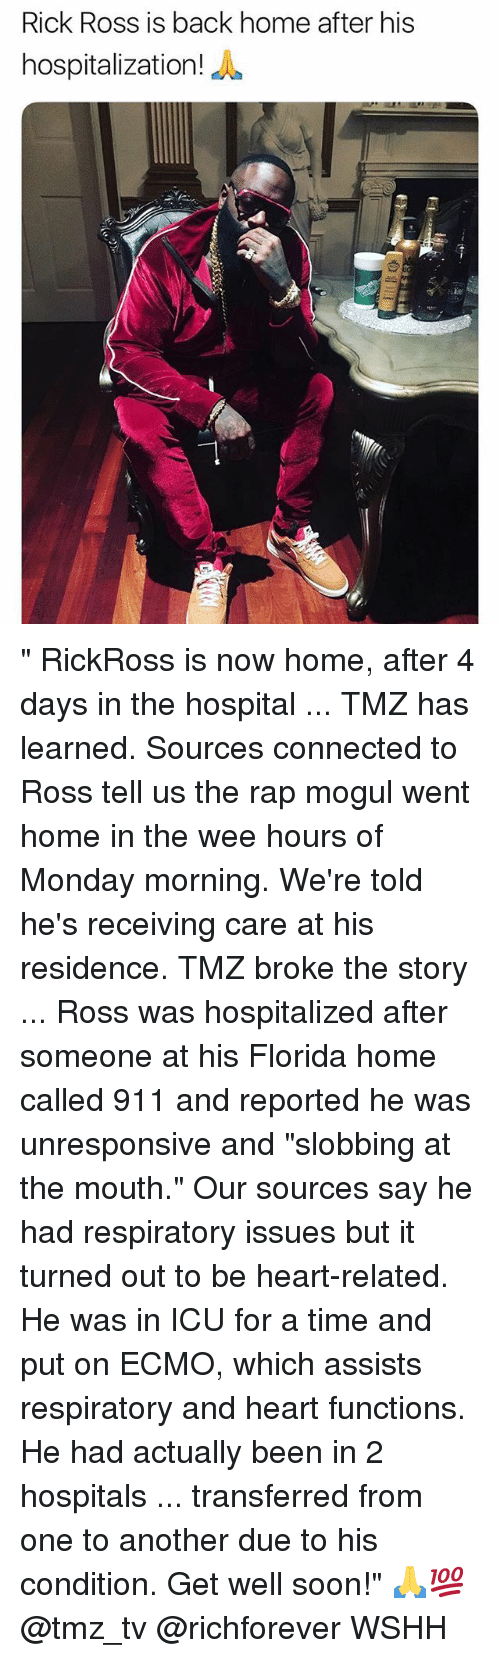 """Memes, Rap, and Rick Ross: Rick Ross is back home after his  hospitalization  iE """" RickRoss is now home, after 4 days in the hospital ... TMZ has learned. Sources connected to Ross tell us the rap mogul went home in the wee hours of Monday morning. We're told he's receiving care at his residence. TMZ broke the story ... Ross was hospitalized after someone at his Florida home called 911 and reported he was unresponsive and """"slobbing at the mouth."""" Our sources say he had respiratory issues but it turned out to be heart-related. He was in ICU for a time and put on ECMO, which assists respiratory and heart functions. He had actually been in 2 hospitals ... transferred from one to another due to his condition. Get well soon!"""" 🙏💯 @tmz_tv @richforever WSHH"""